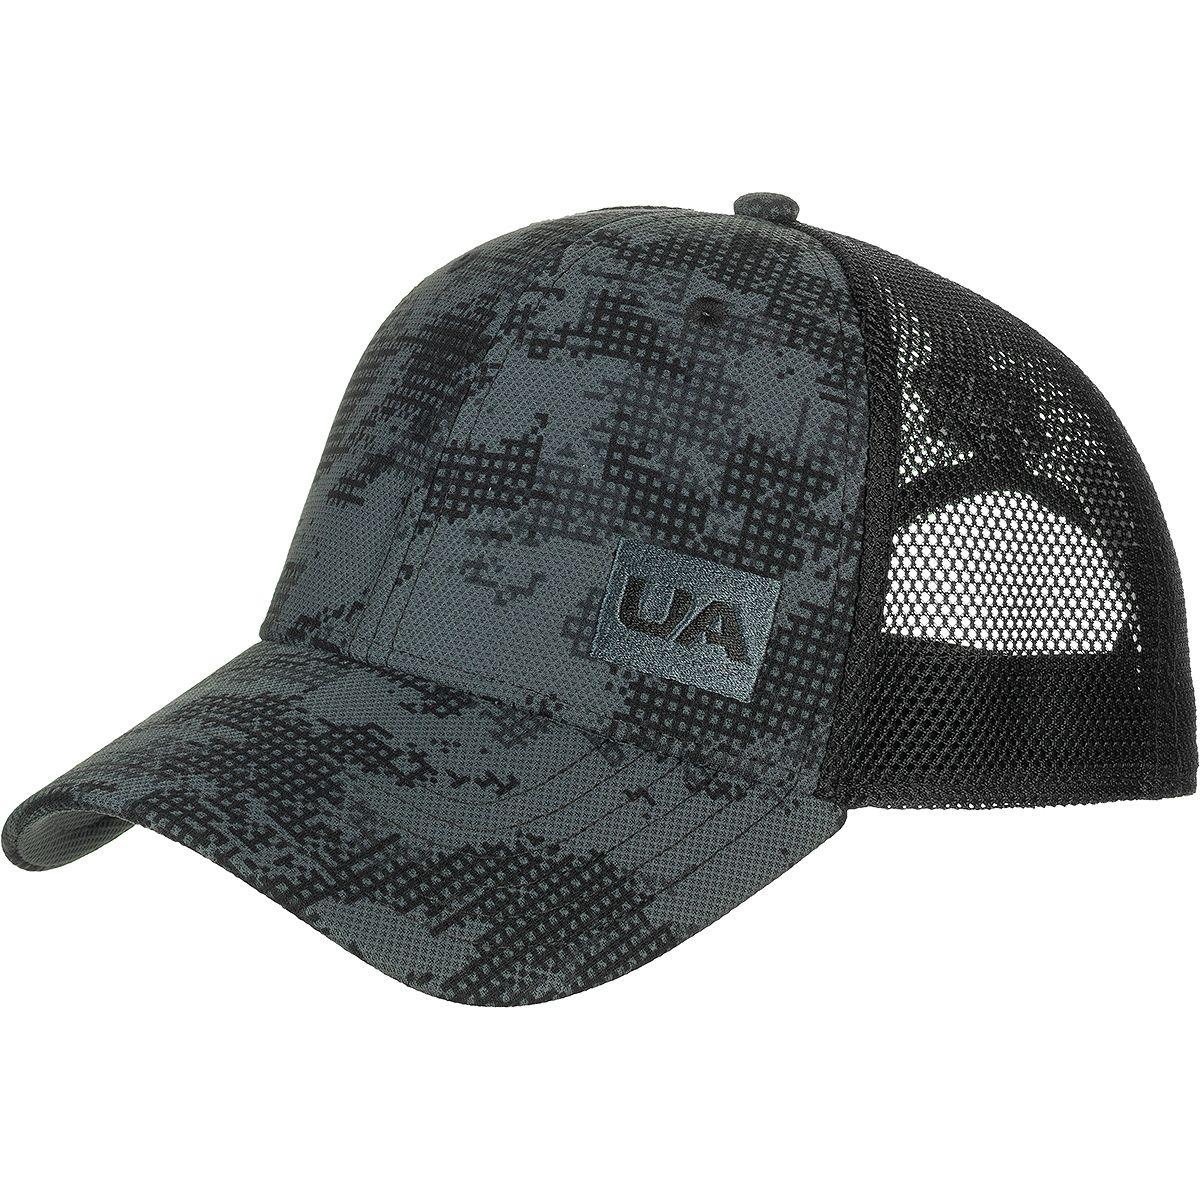 c21ba72b3fa96 Lyst - Under Armour Blitzing 3.0 Trucker Hat in Black for Men